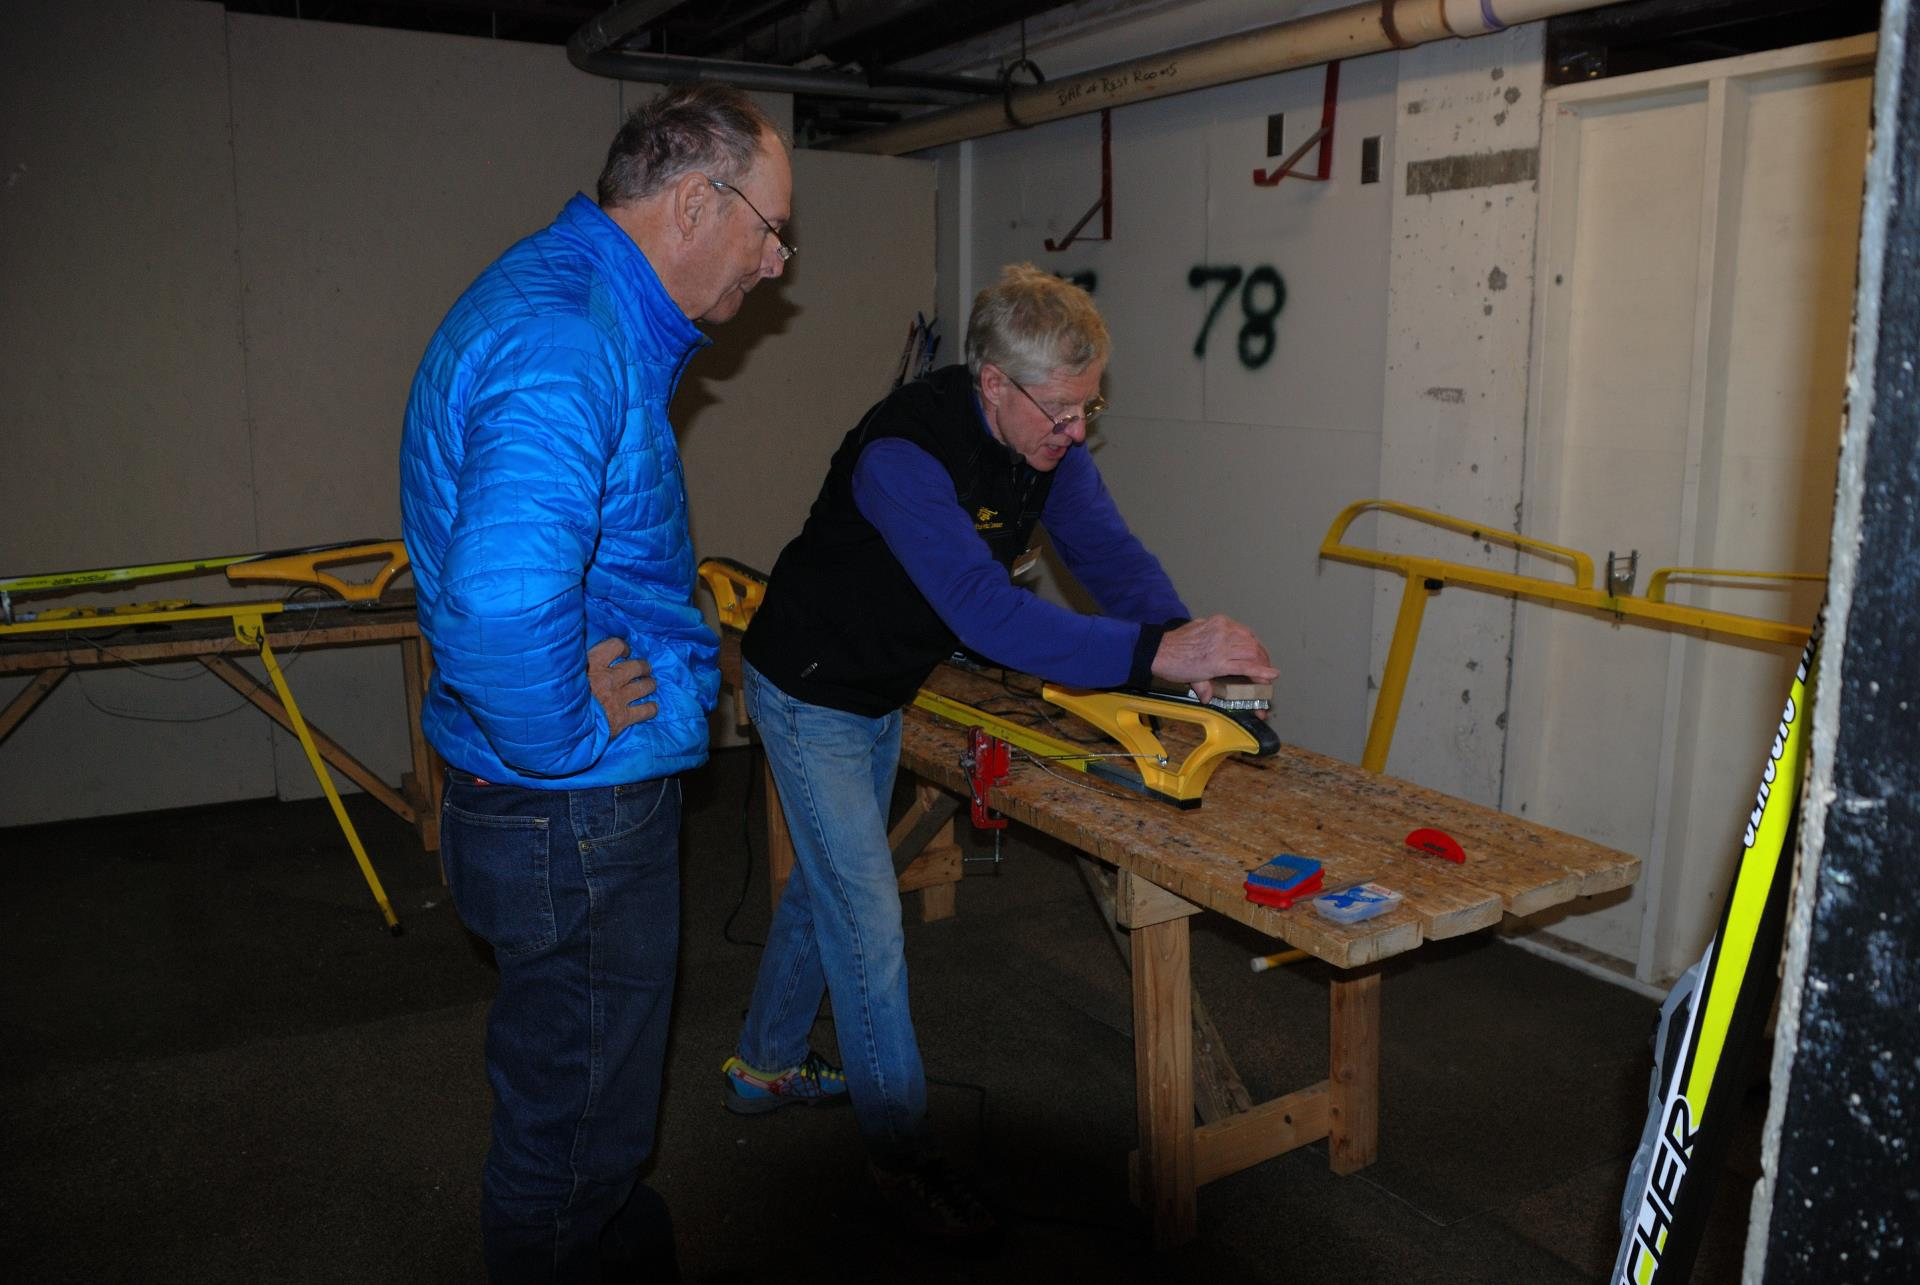 Two men in Gold Run Nordic Center tune shop working on skis